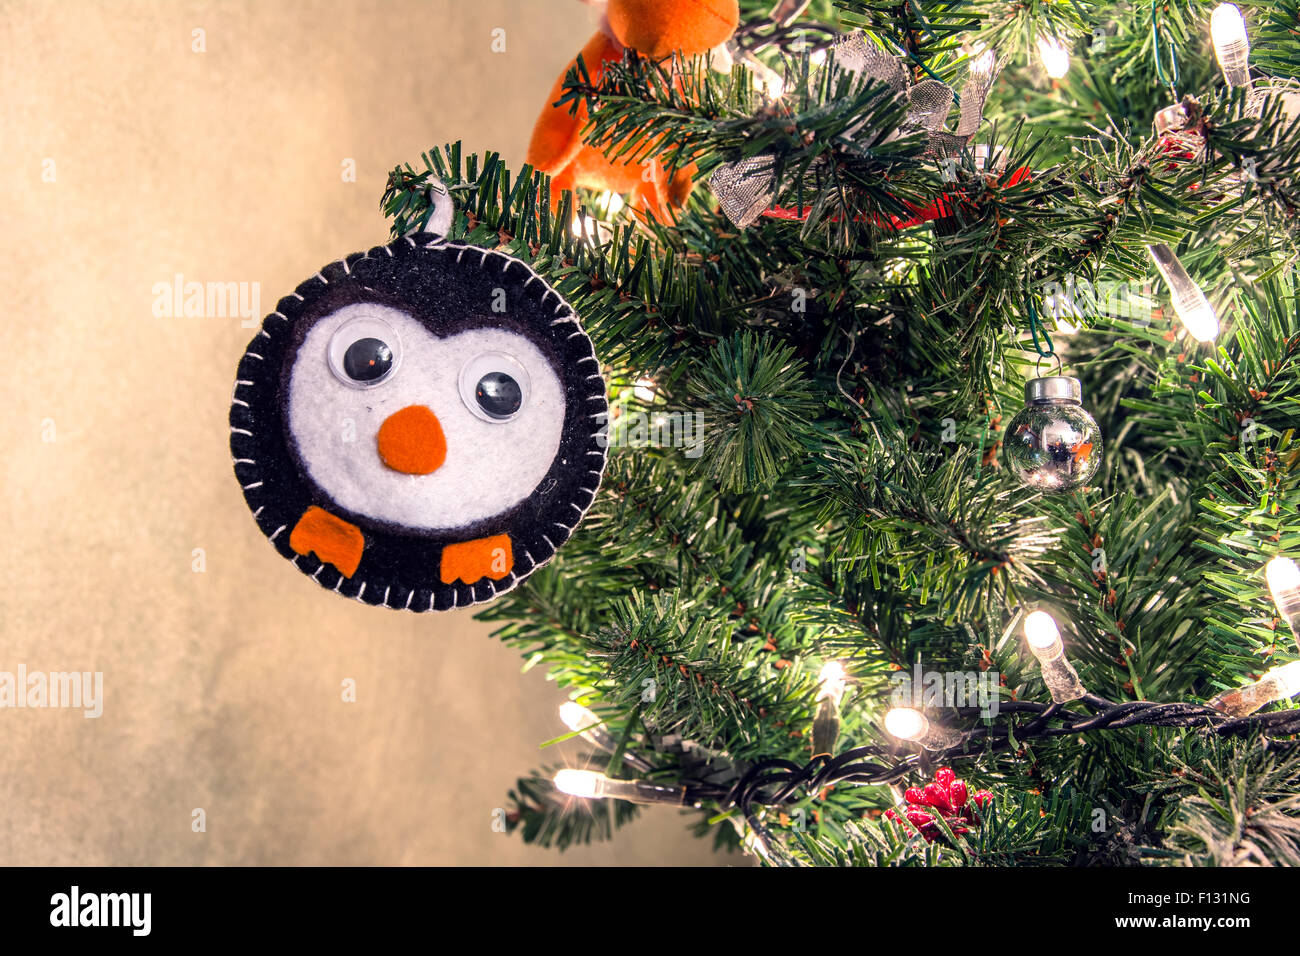 detail of Christmas tree decorated with handmade animal decoration - Stock Image